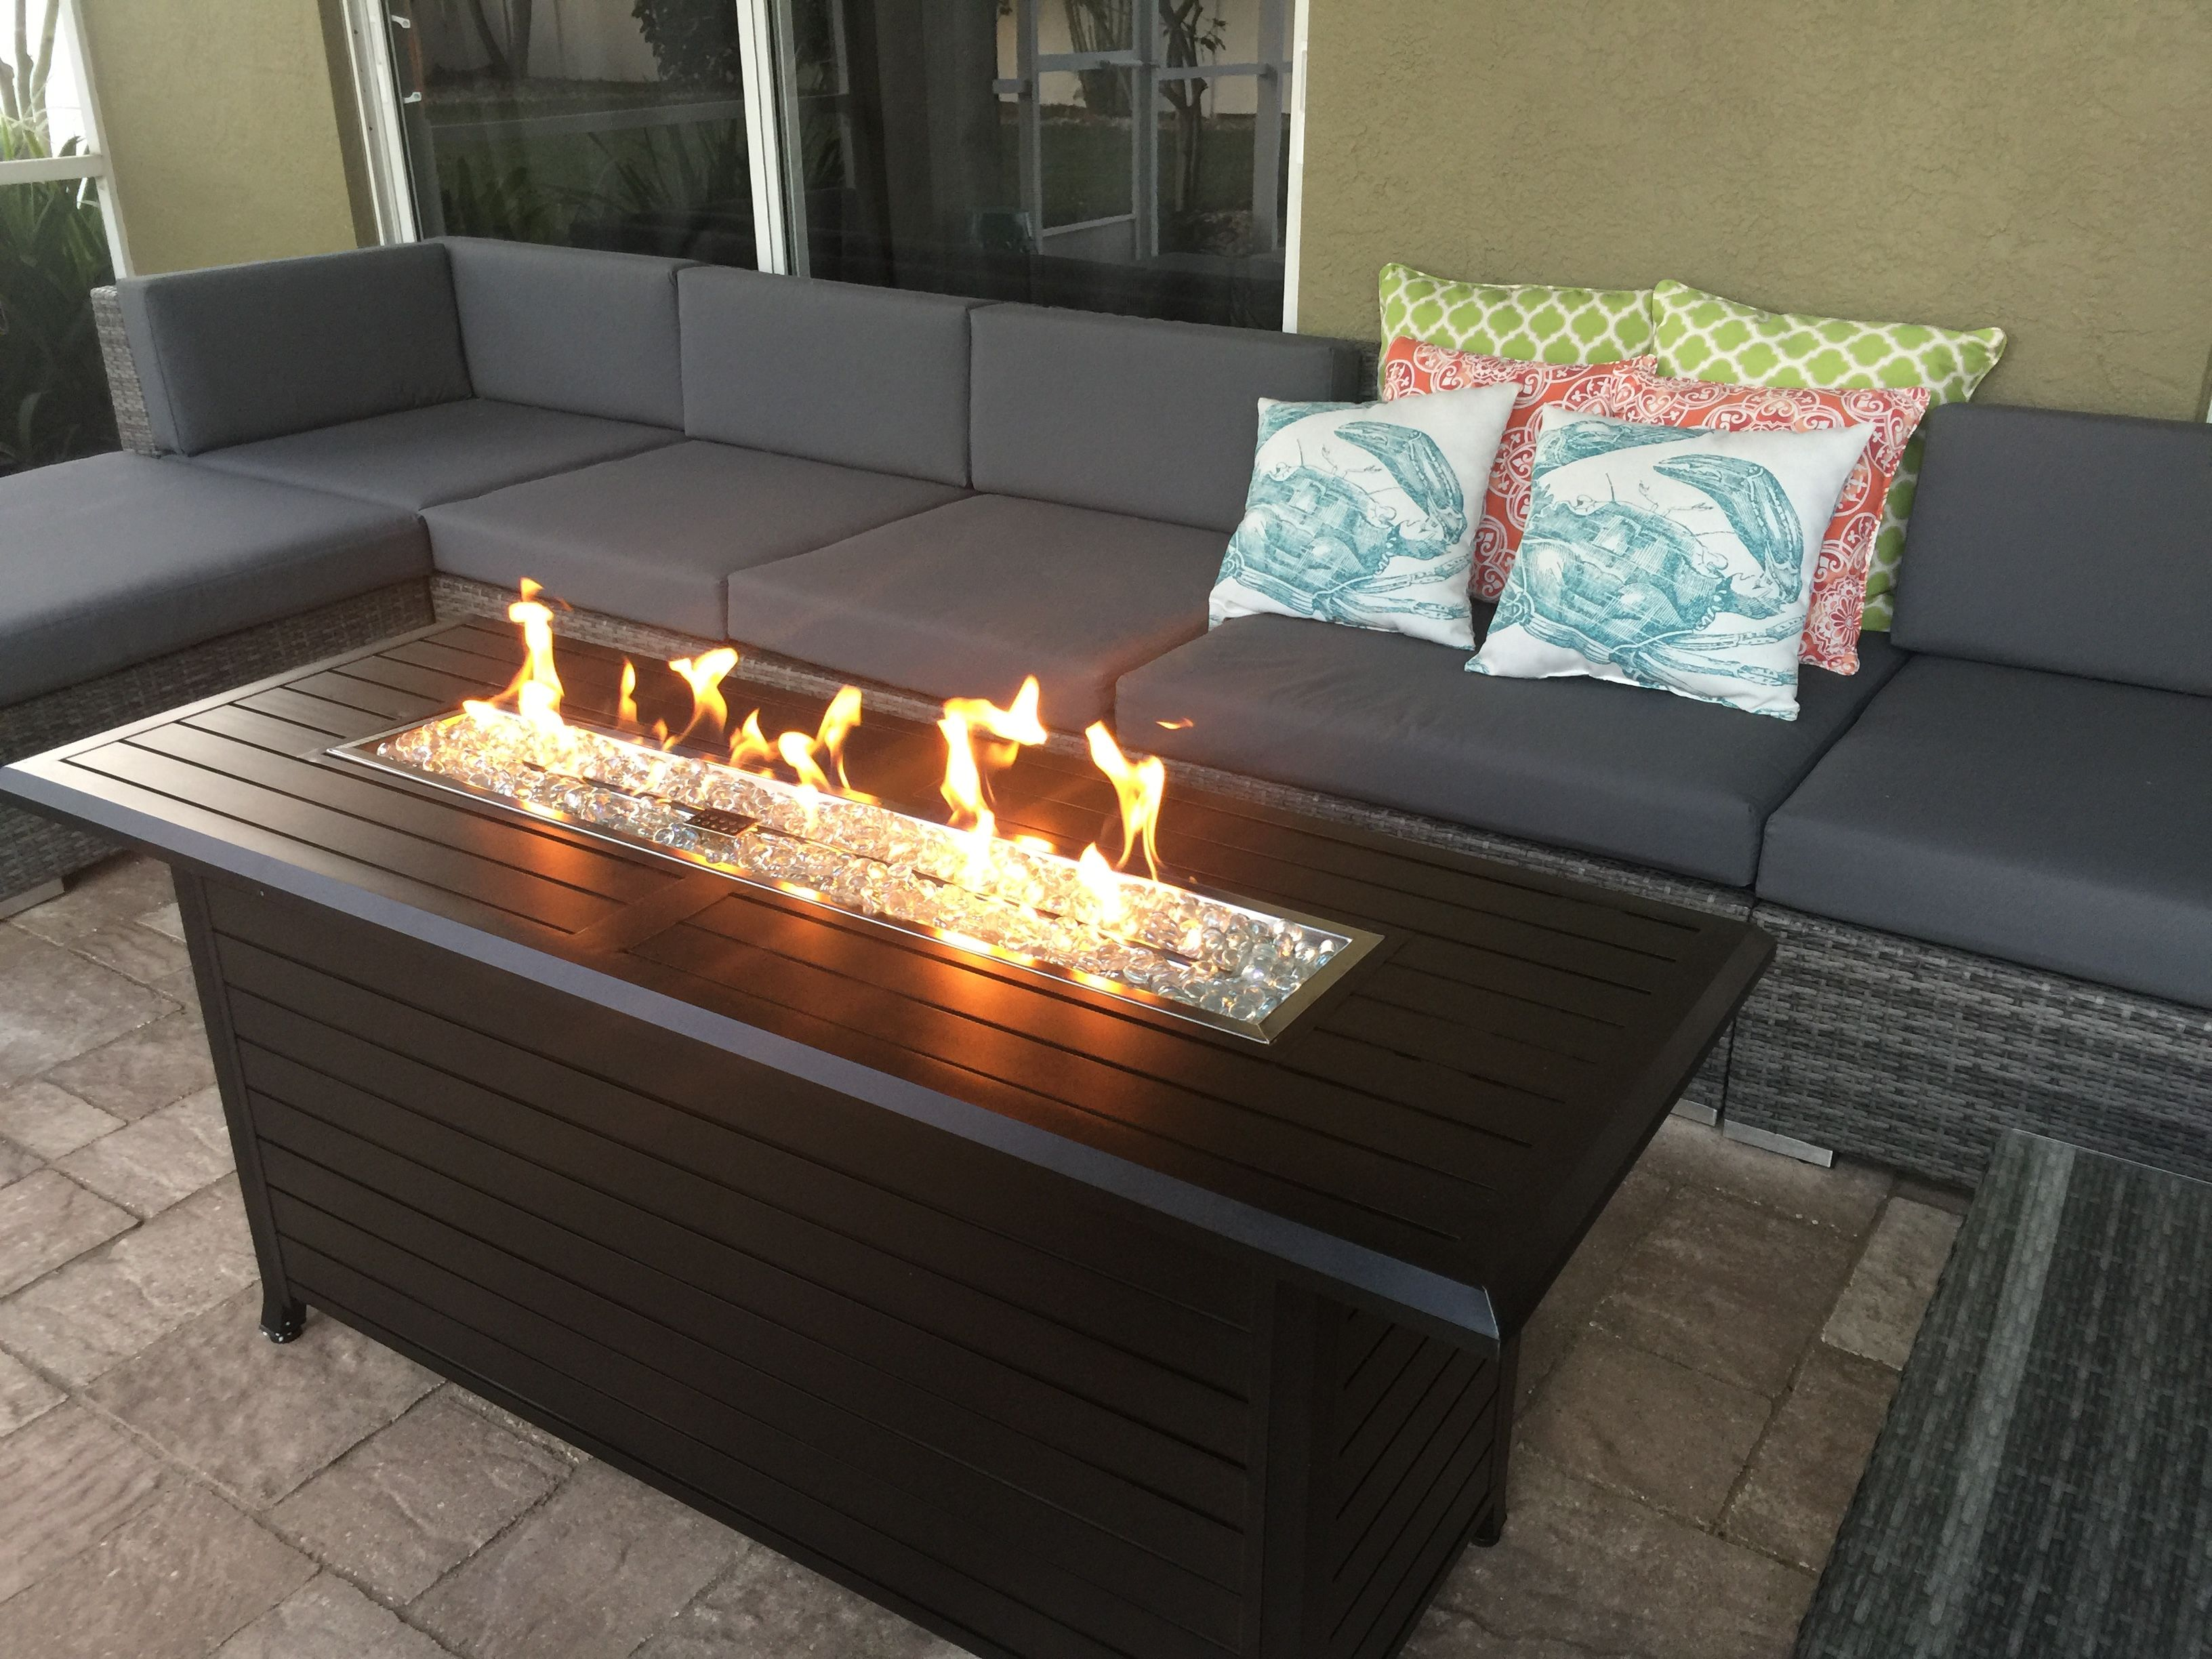 Outdoor Linear Fire Pit And Seating Area On Lanai Better Homes And Gardens Carter Hills Linear